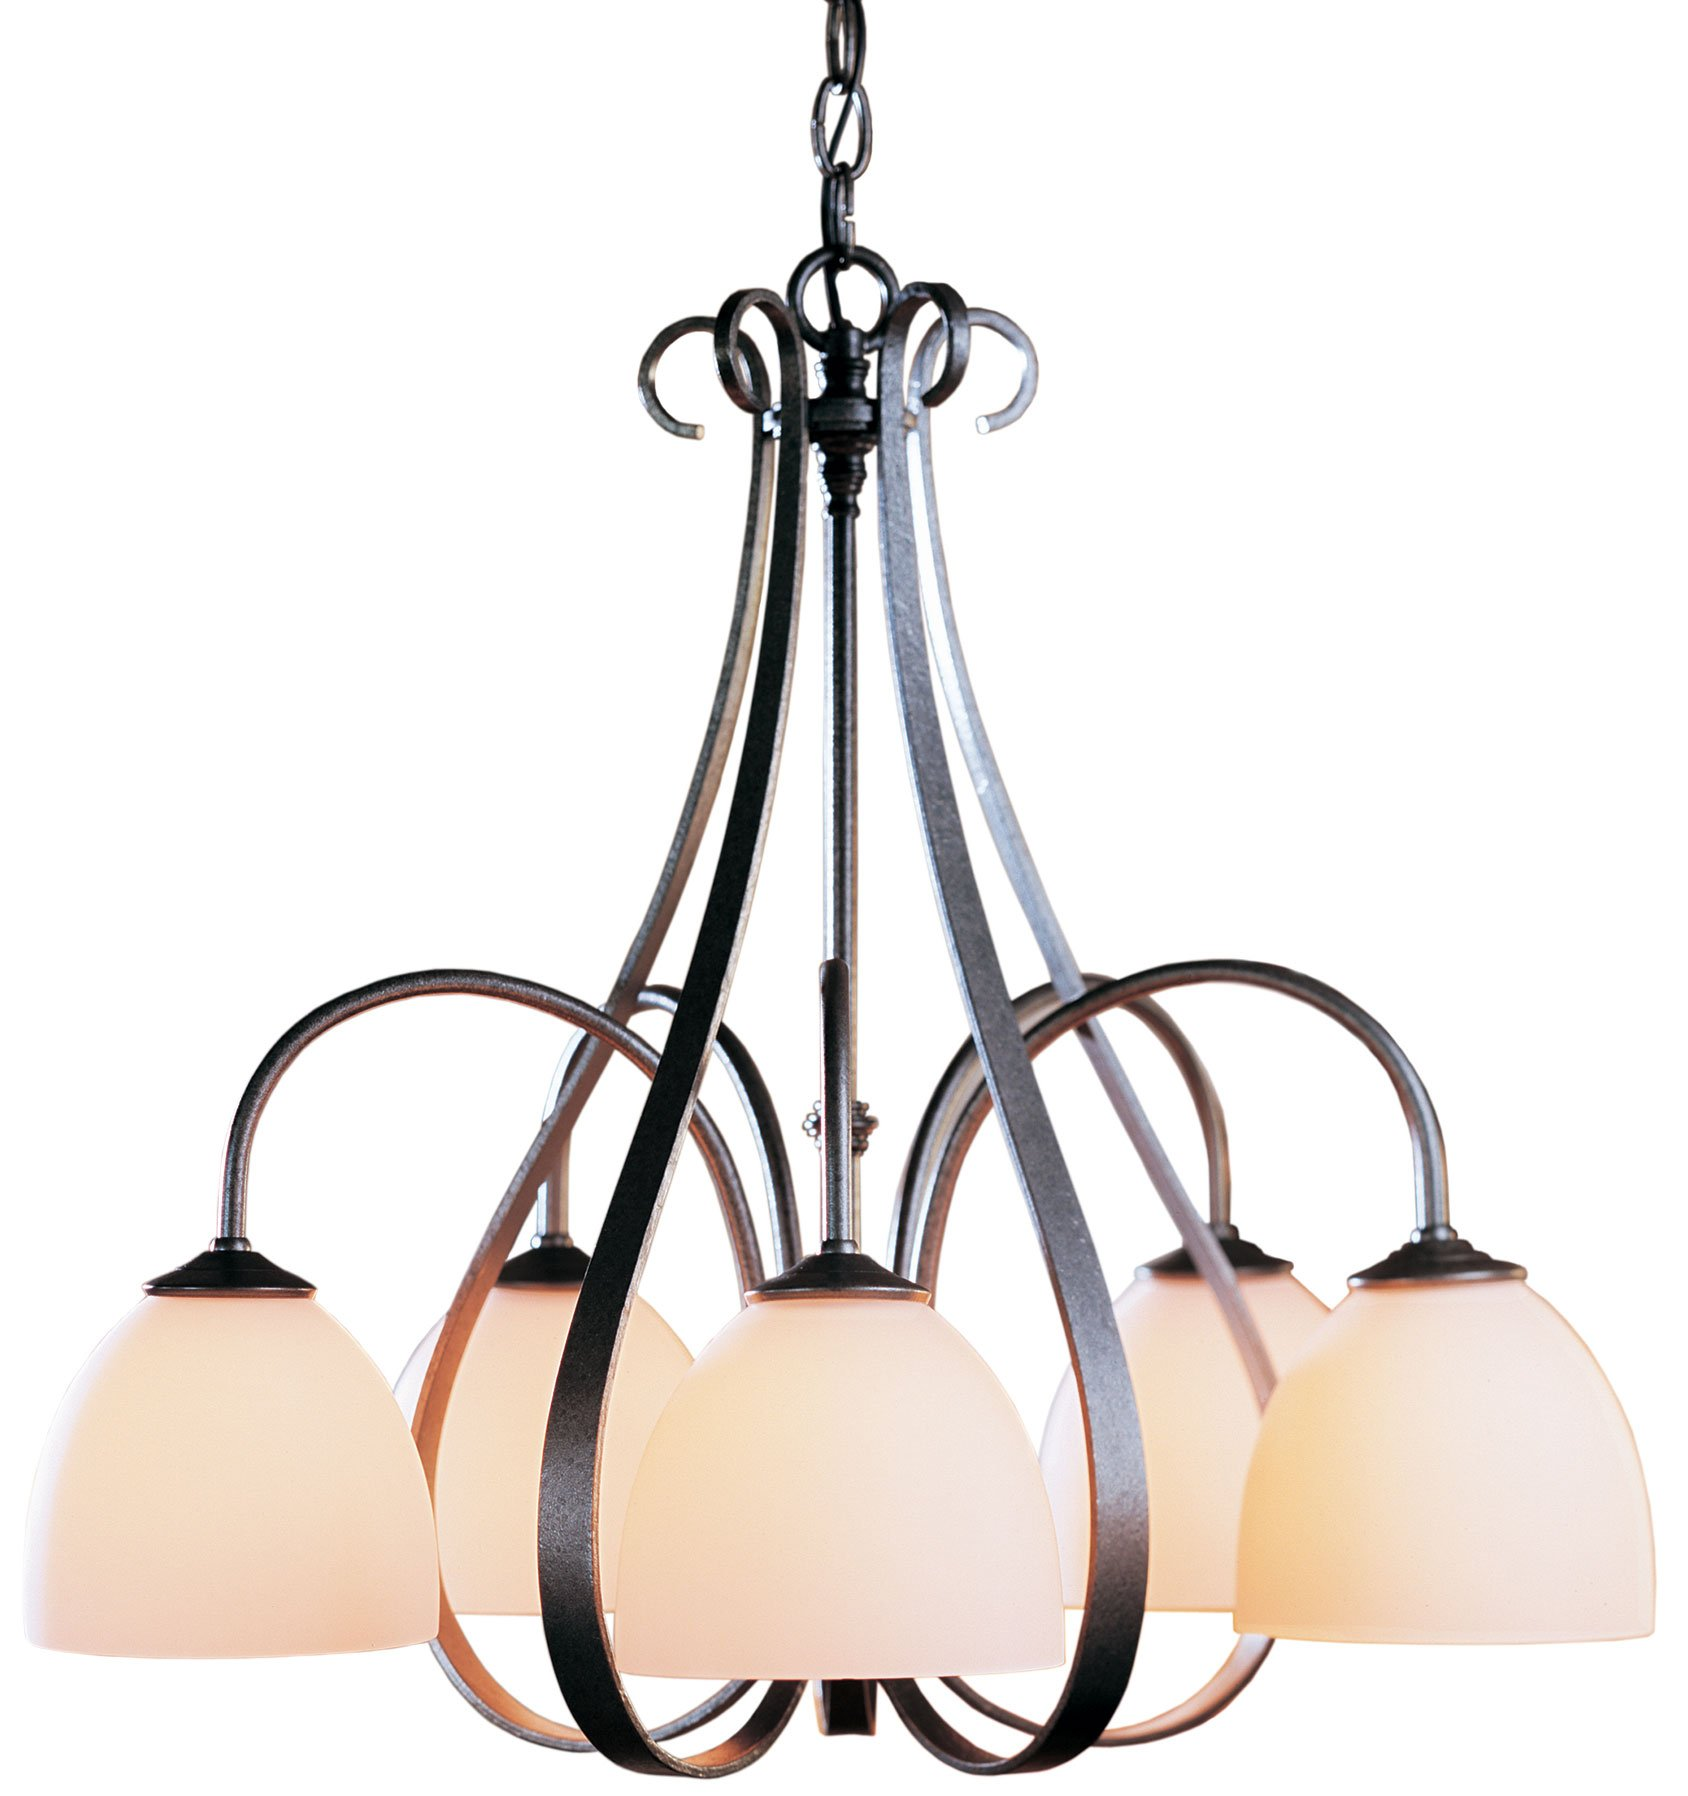 Hubbardton Forge Sweeping Taper: Hubbardton Forge 101445 Sweeping Taper Traditional